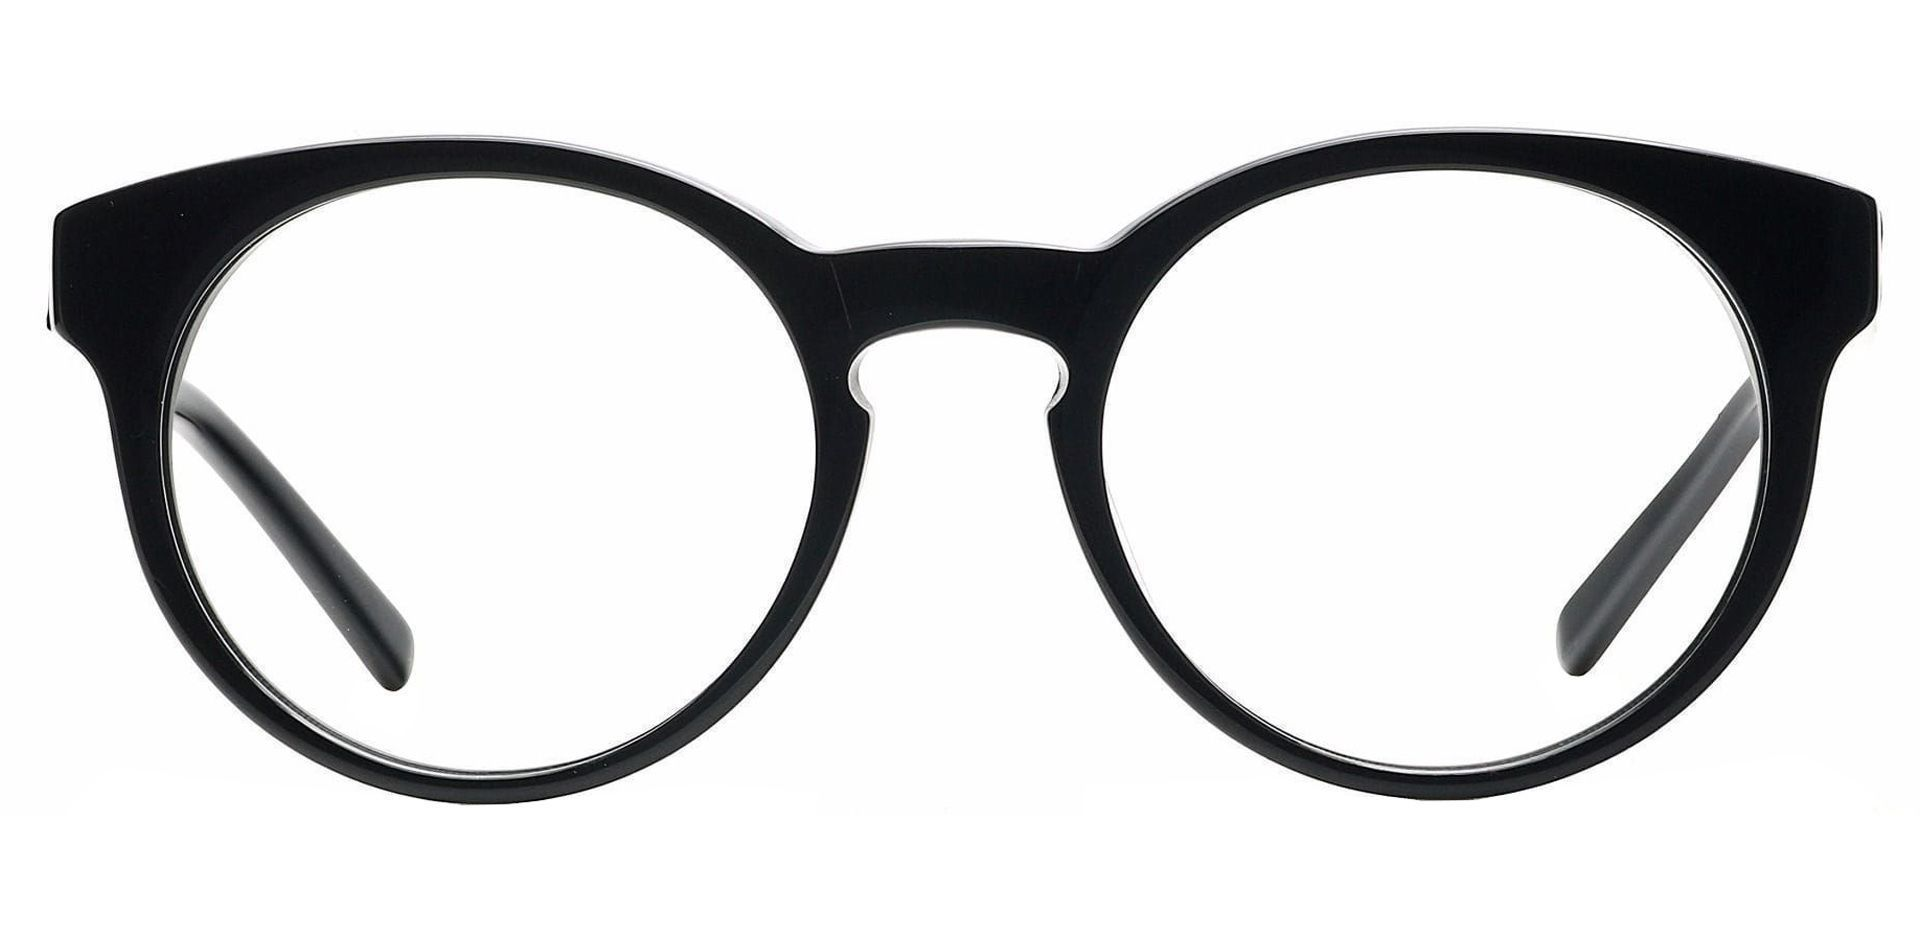 Hip Round Lined Bifocal Glasses - Black